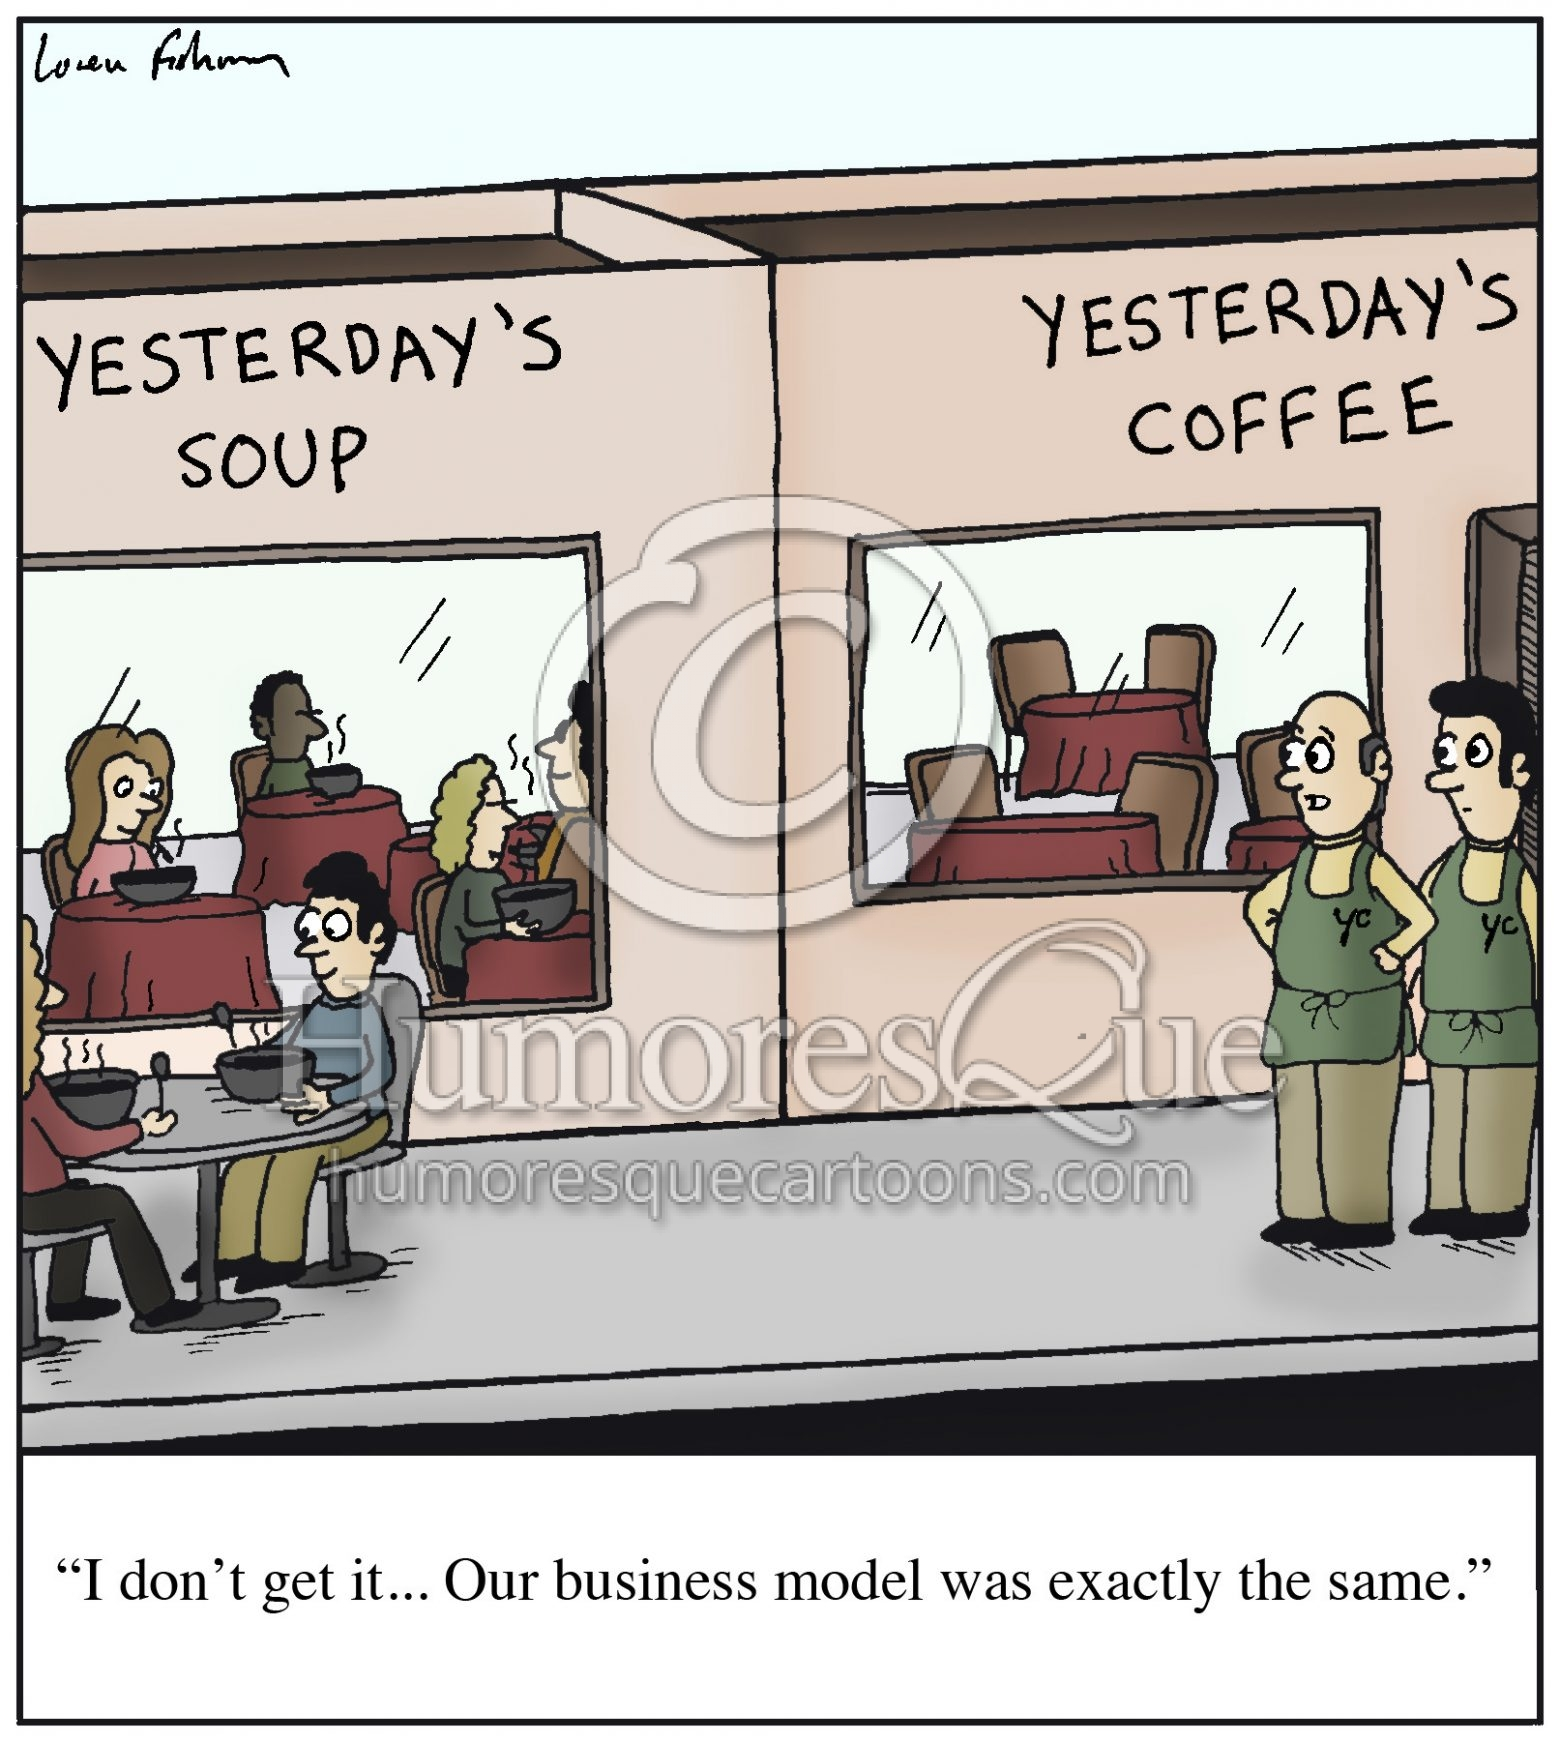 yesterday's coffee business model failure cartoon